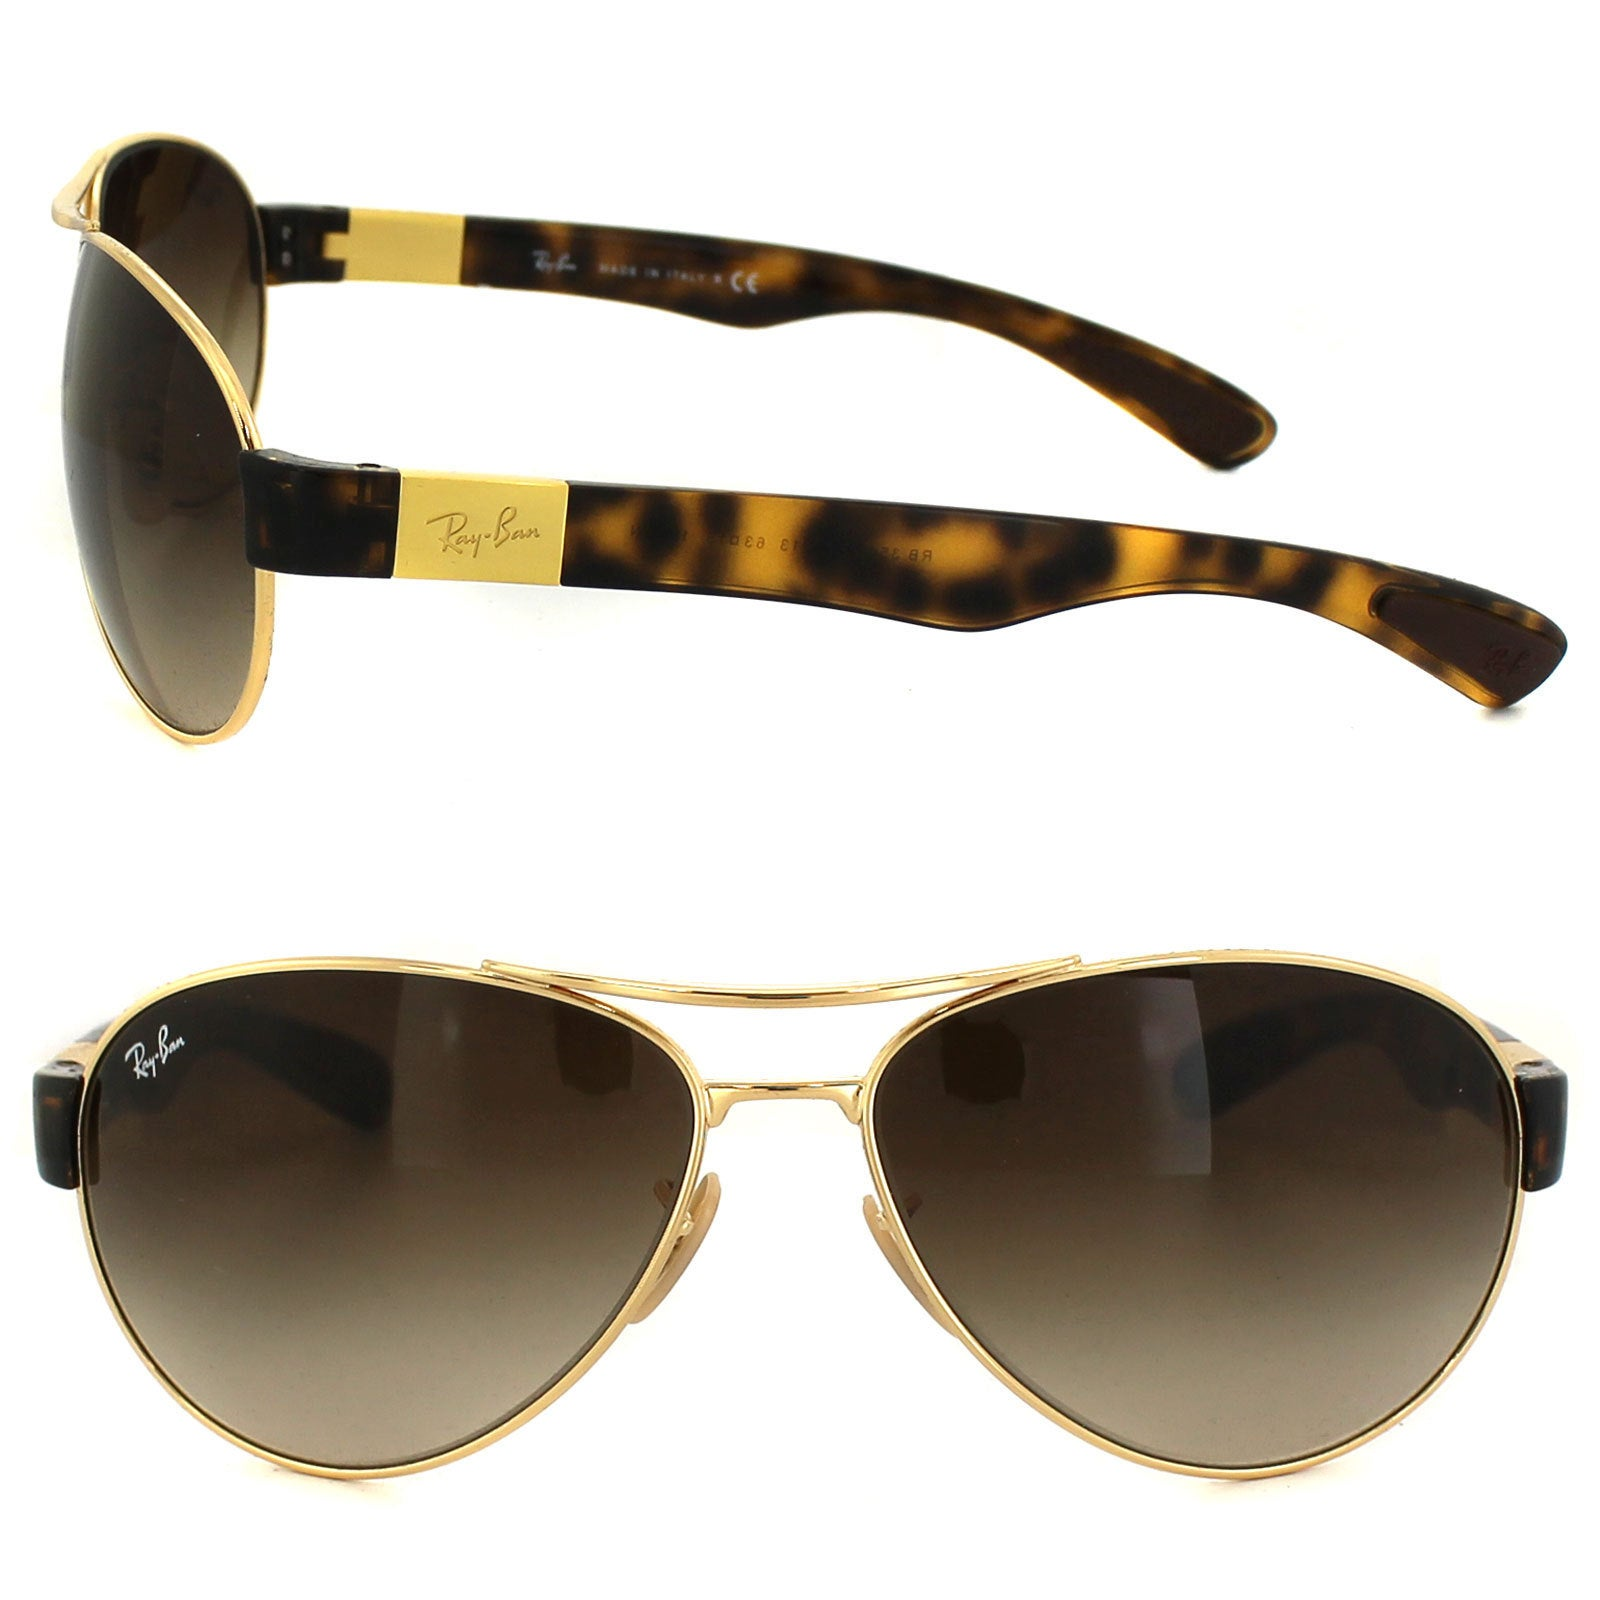 b60b57134de Shop Ray-Ban RB3509 Unisex Gold Tortoise Frame Brown Gradient Lens  Sunglasses - Free Shipping Today - Overstock - 10520564